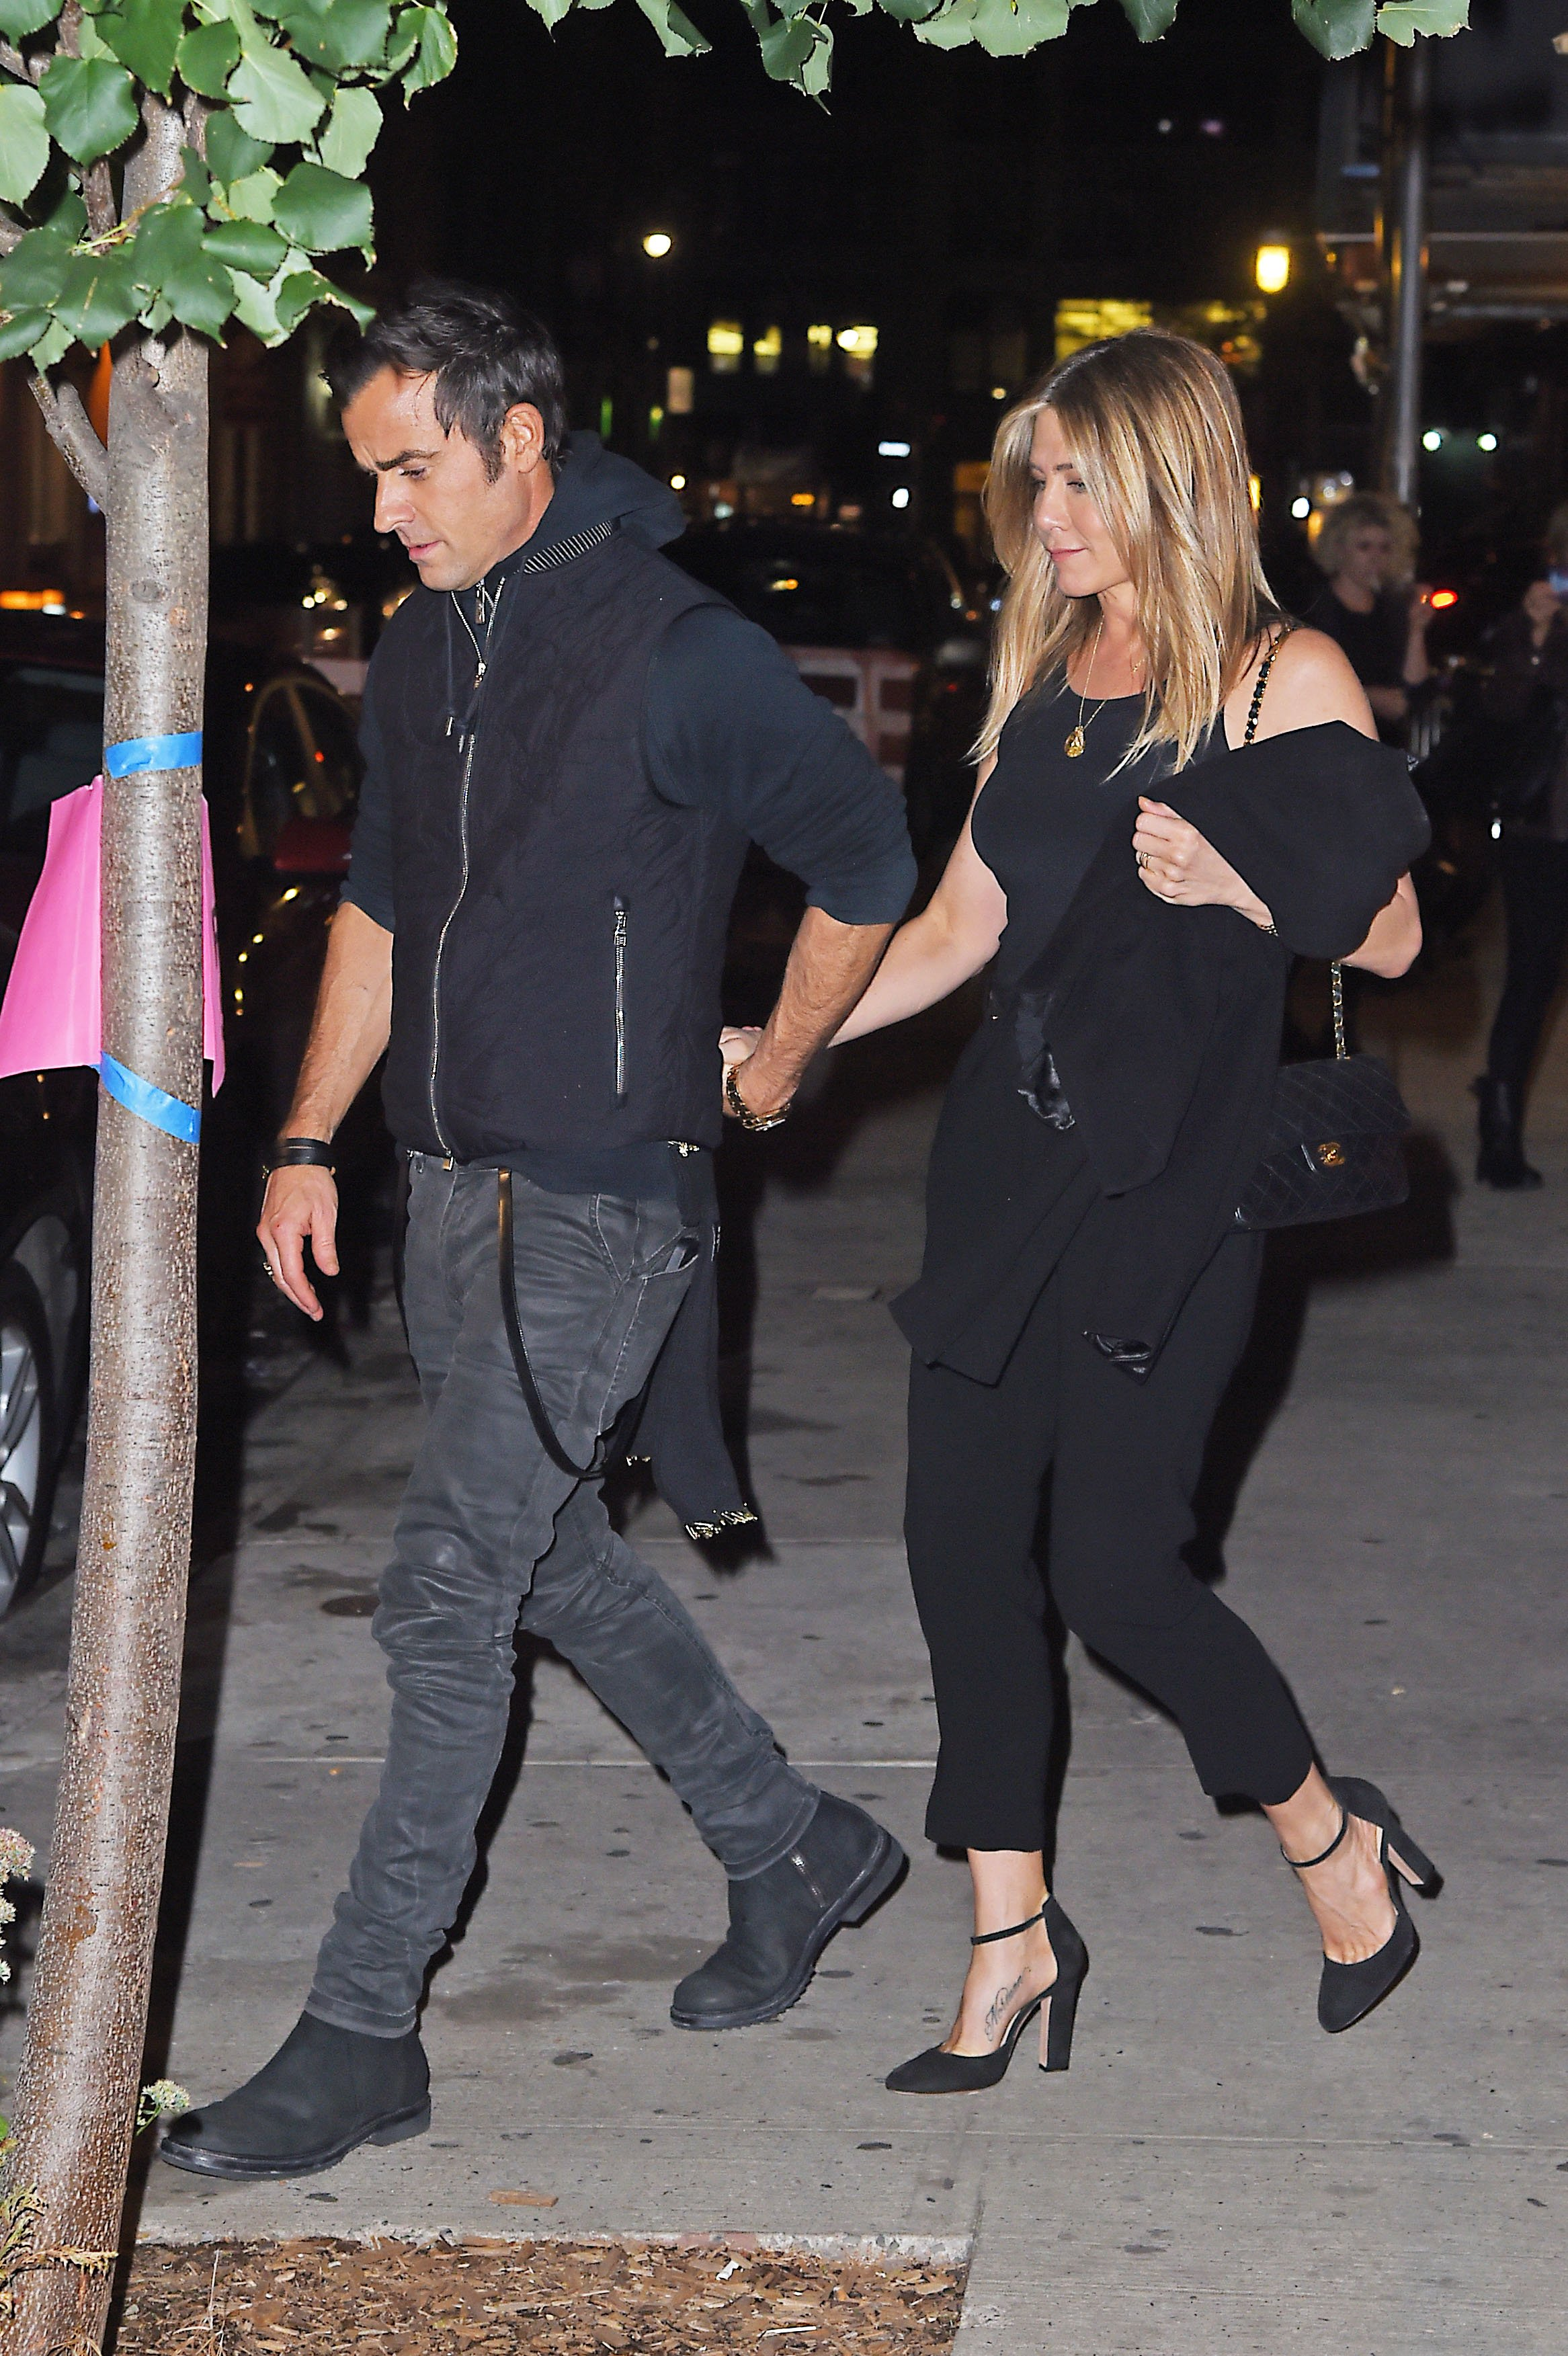 Jennifer Aniston and Justin Theroux get dinner with friend Carlos Quirarte with his wife on September 24, 2016 in New York